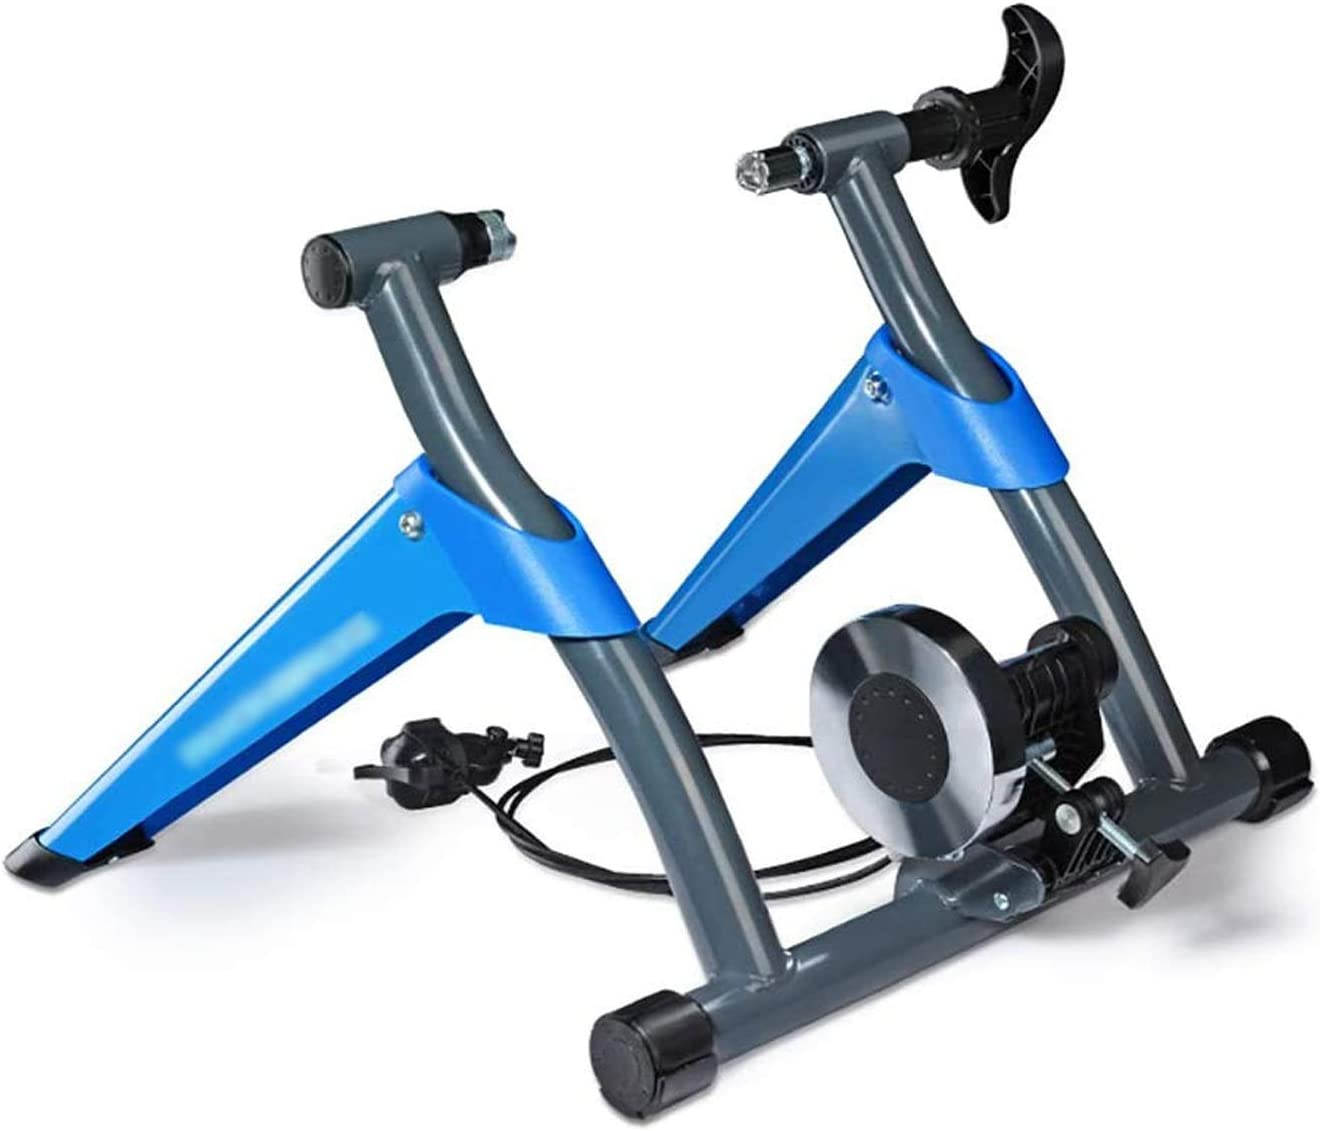 DSWHM Bike Trainer Stand Bicycle Turbo Max 67% OFF Indoor free